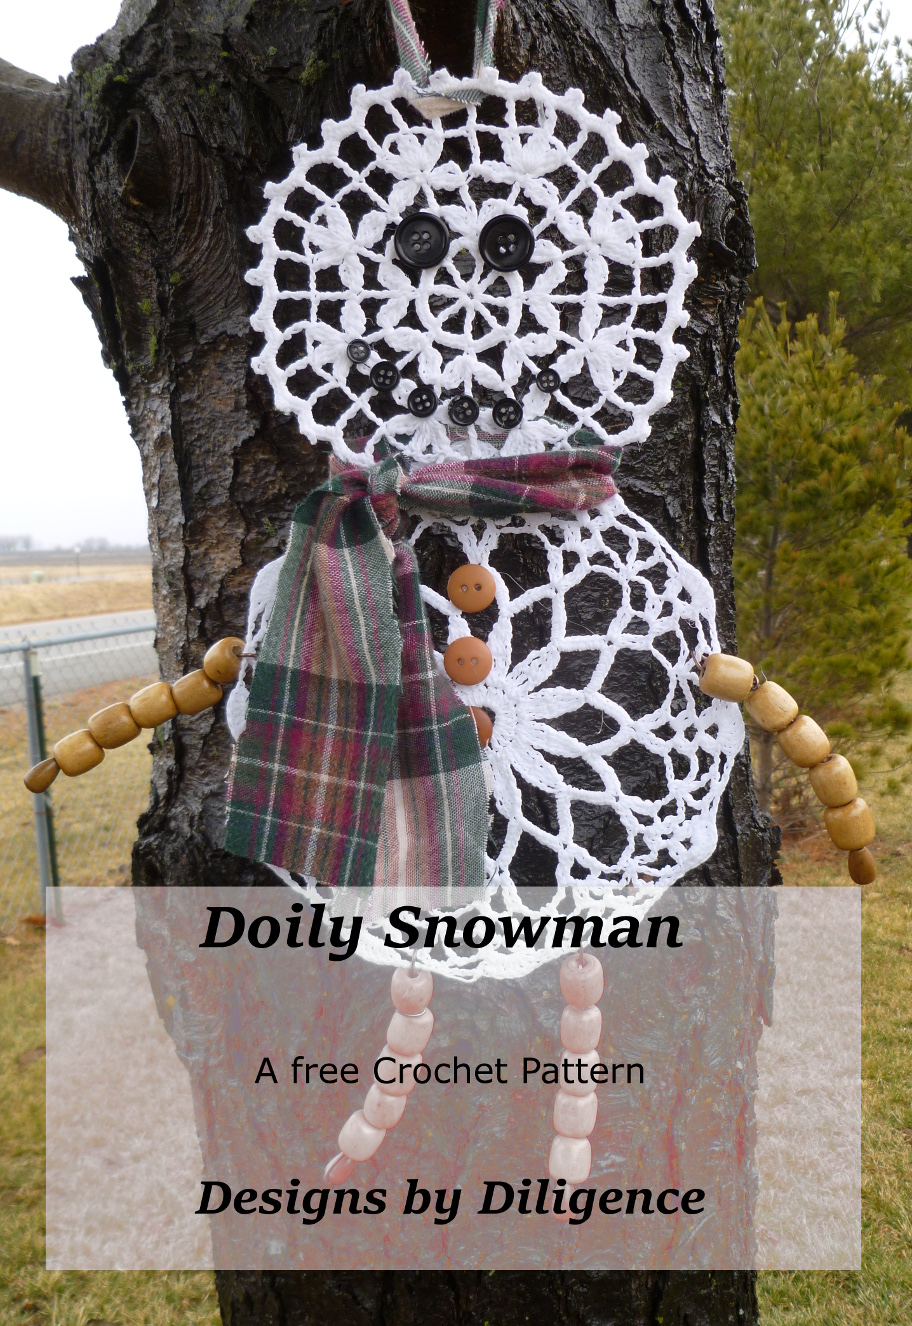 Designs by Diligence: Doily Snowman